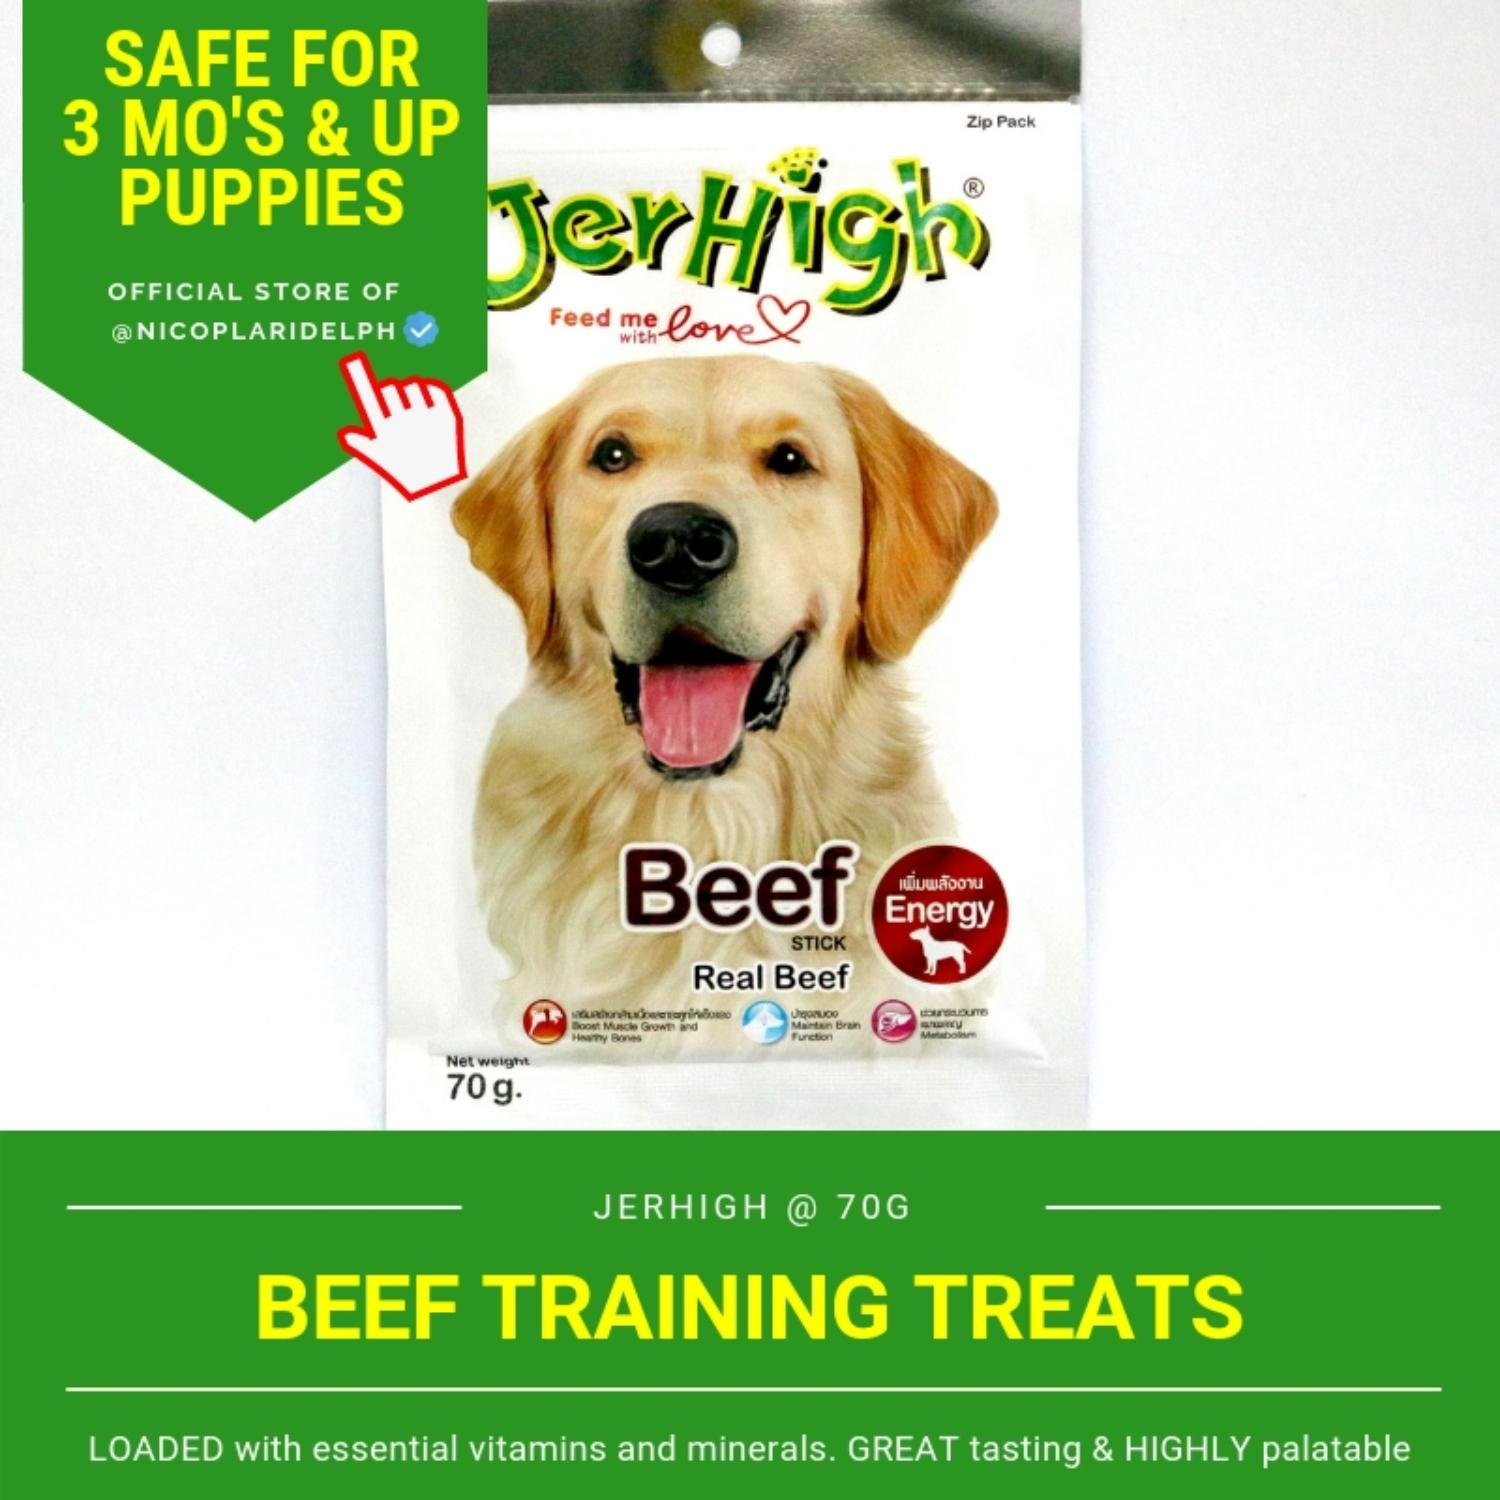 Jerhigh Beef Stick With Real Beef Meat For Puppies And Adult Dogs (70g) By Nicoplaridelph.